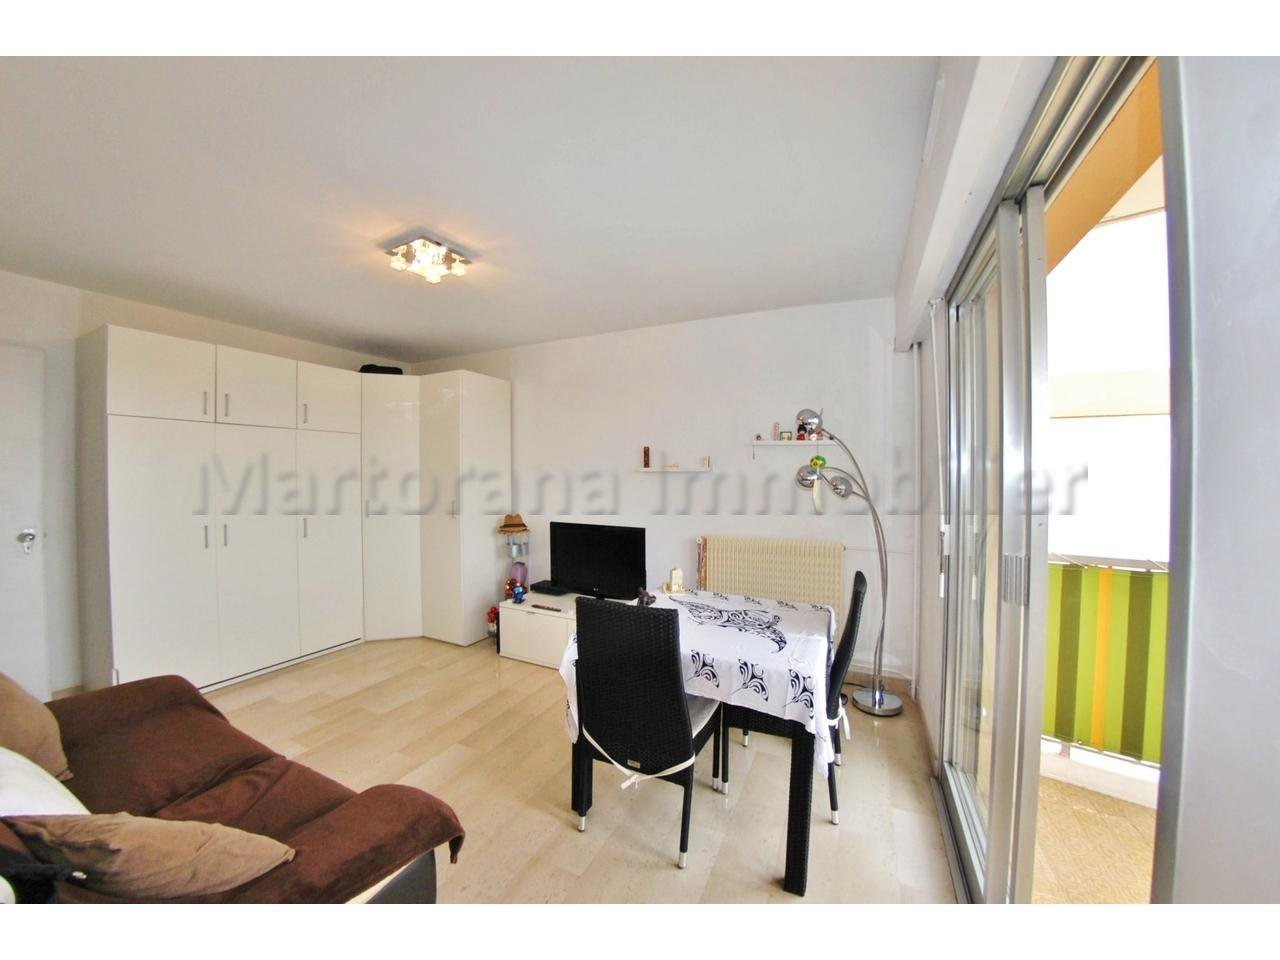 Nice furnished studio with terrace and swimmingpool to rent